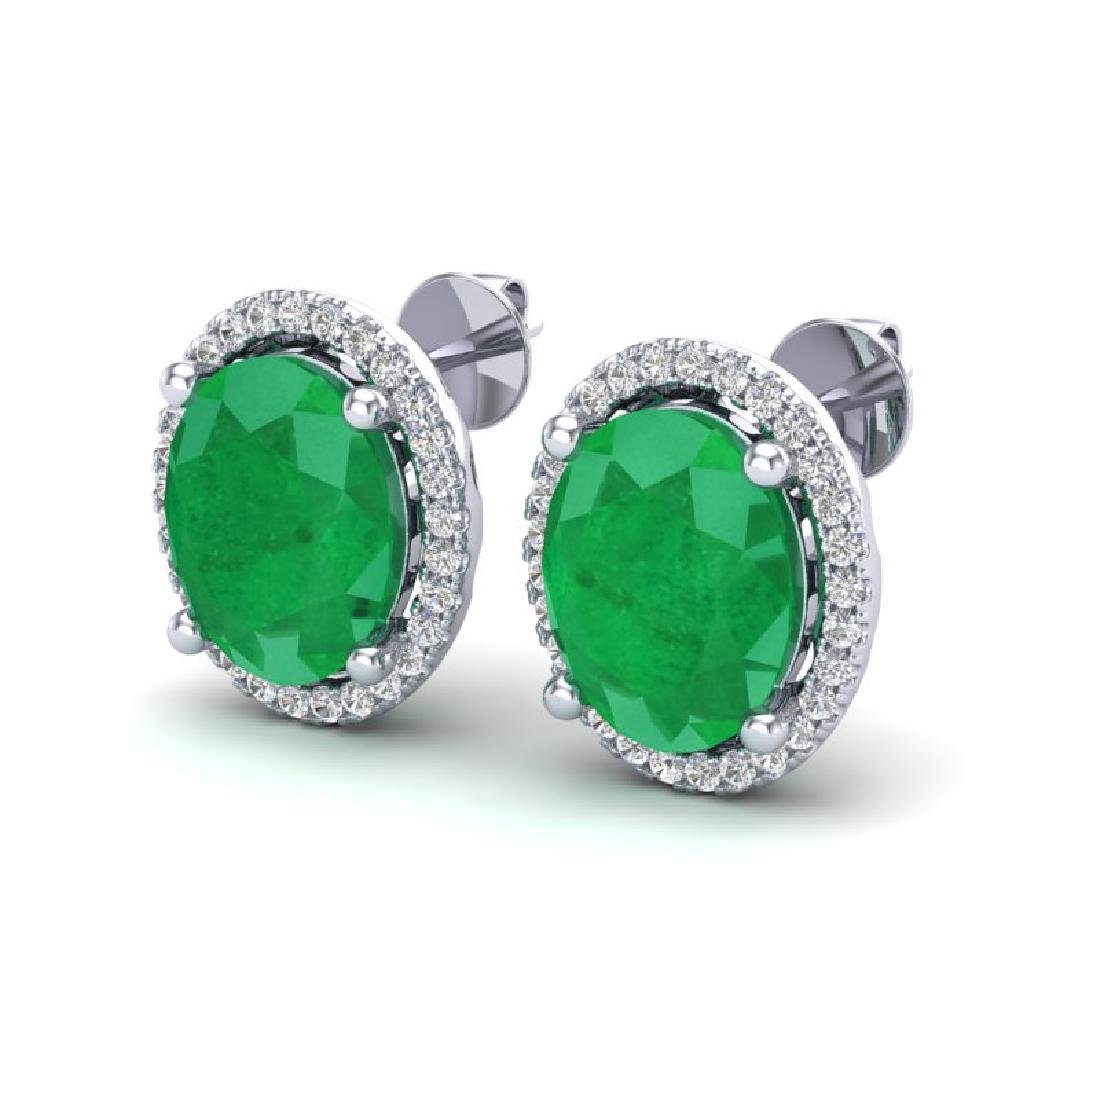 6 CTW Emerald & Micro Pave VS/SI Diamond Earrings Halo